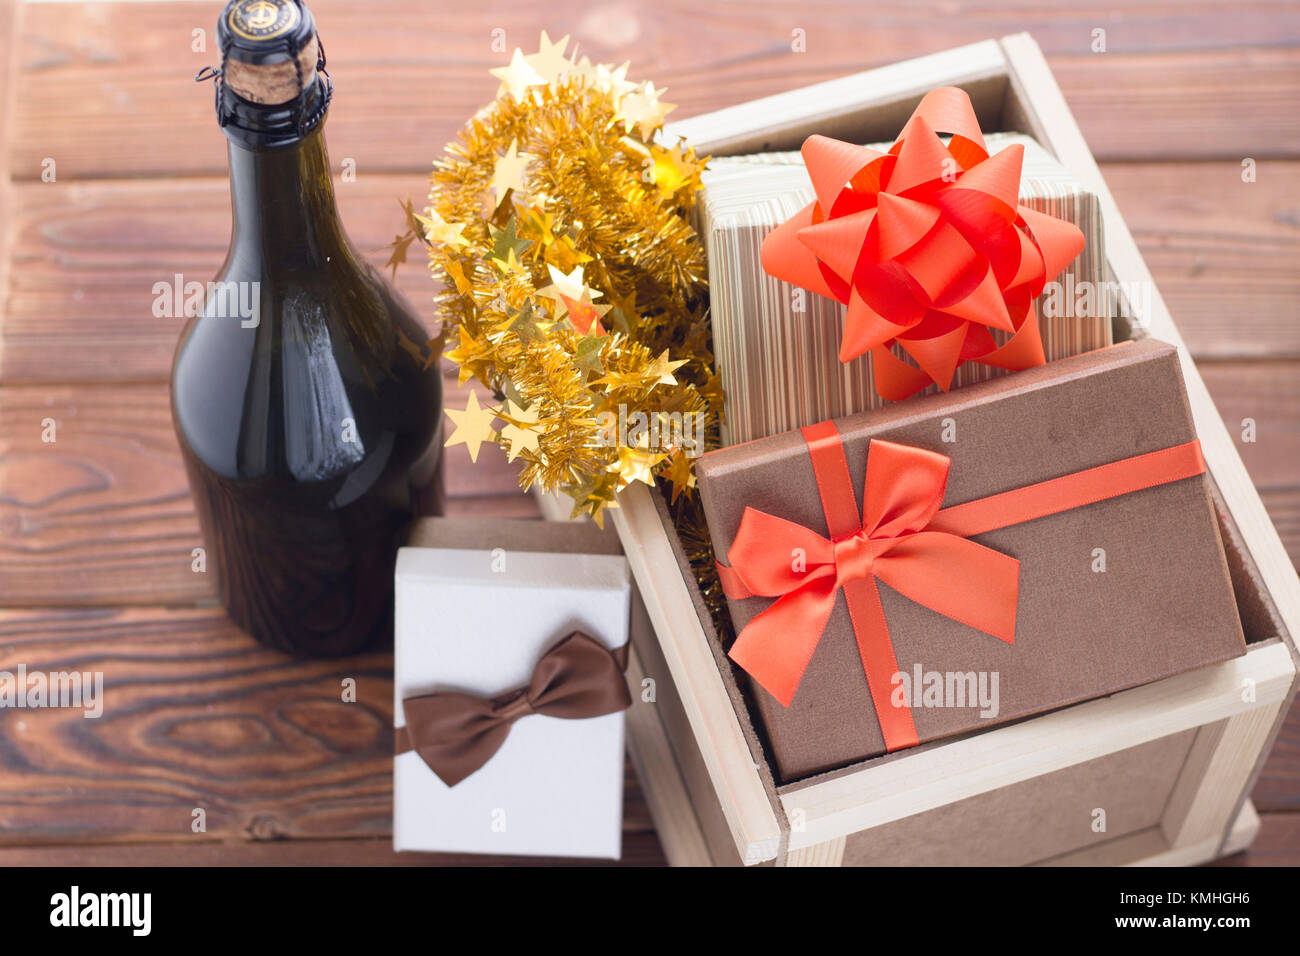 Gifts for the New Year - how to surprise